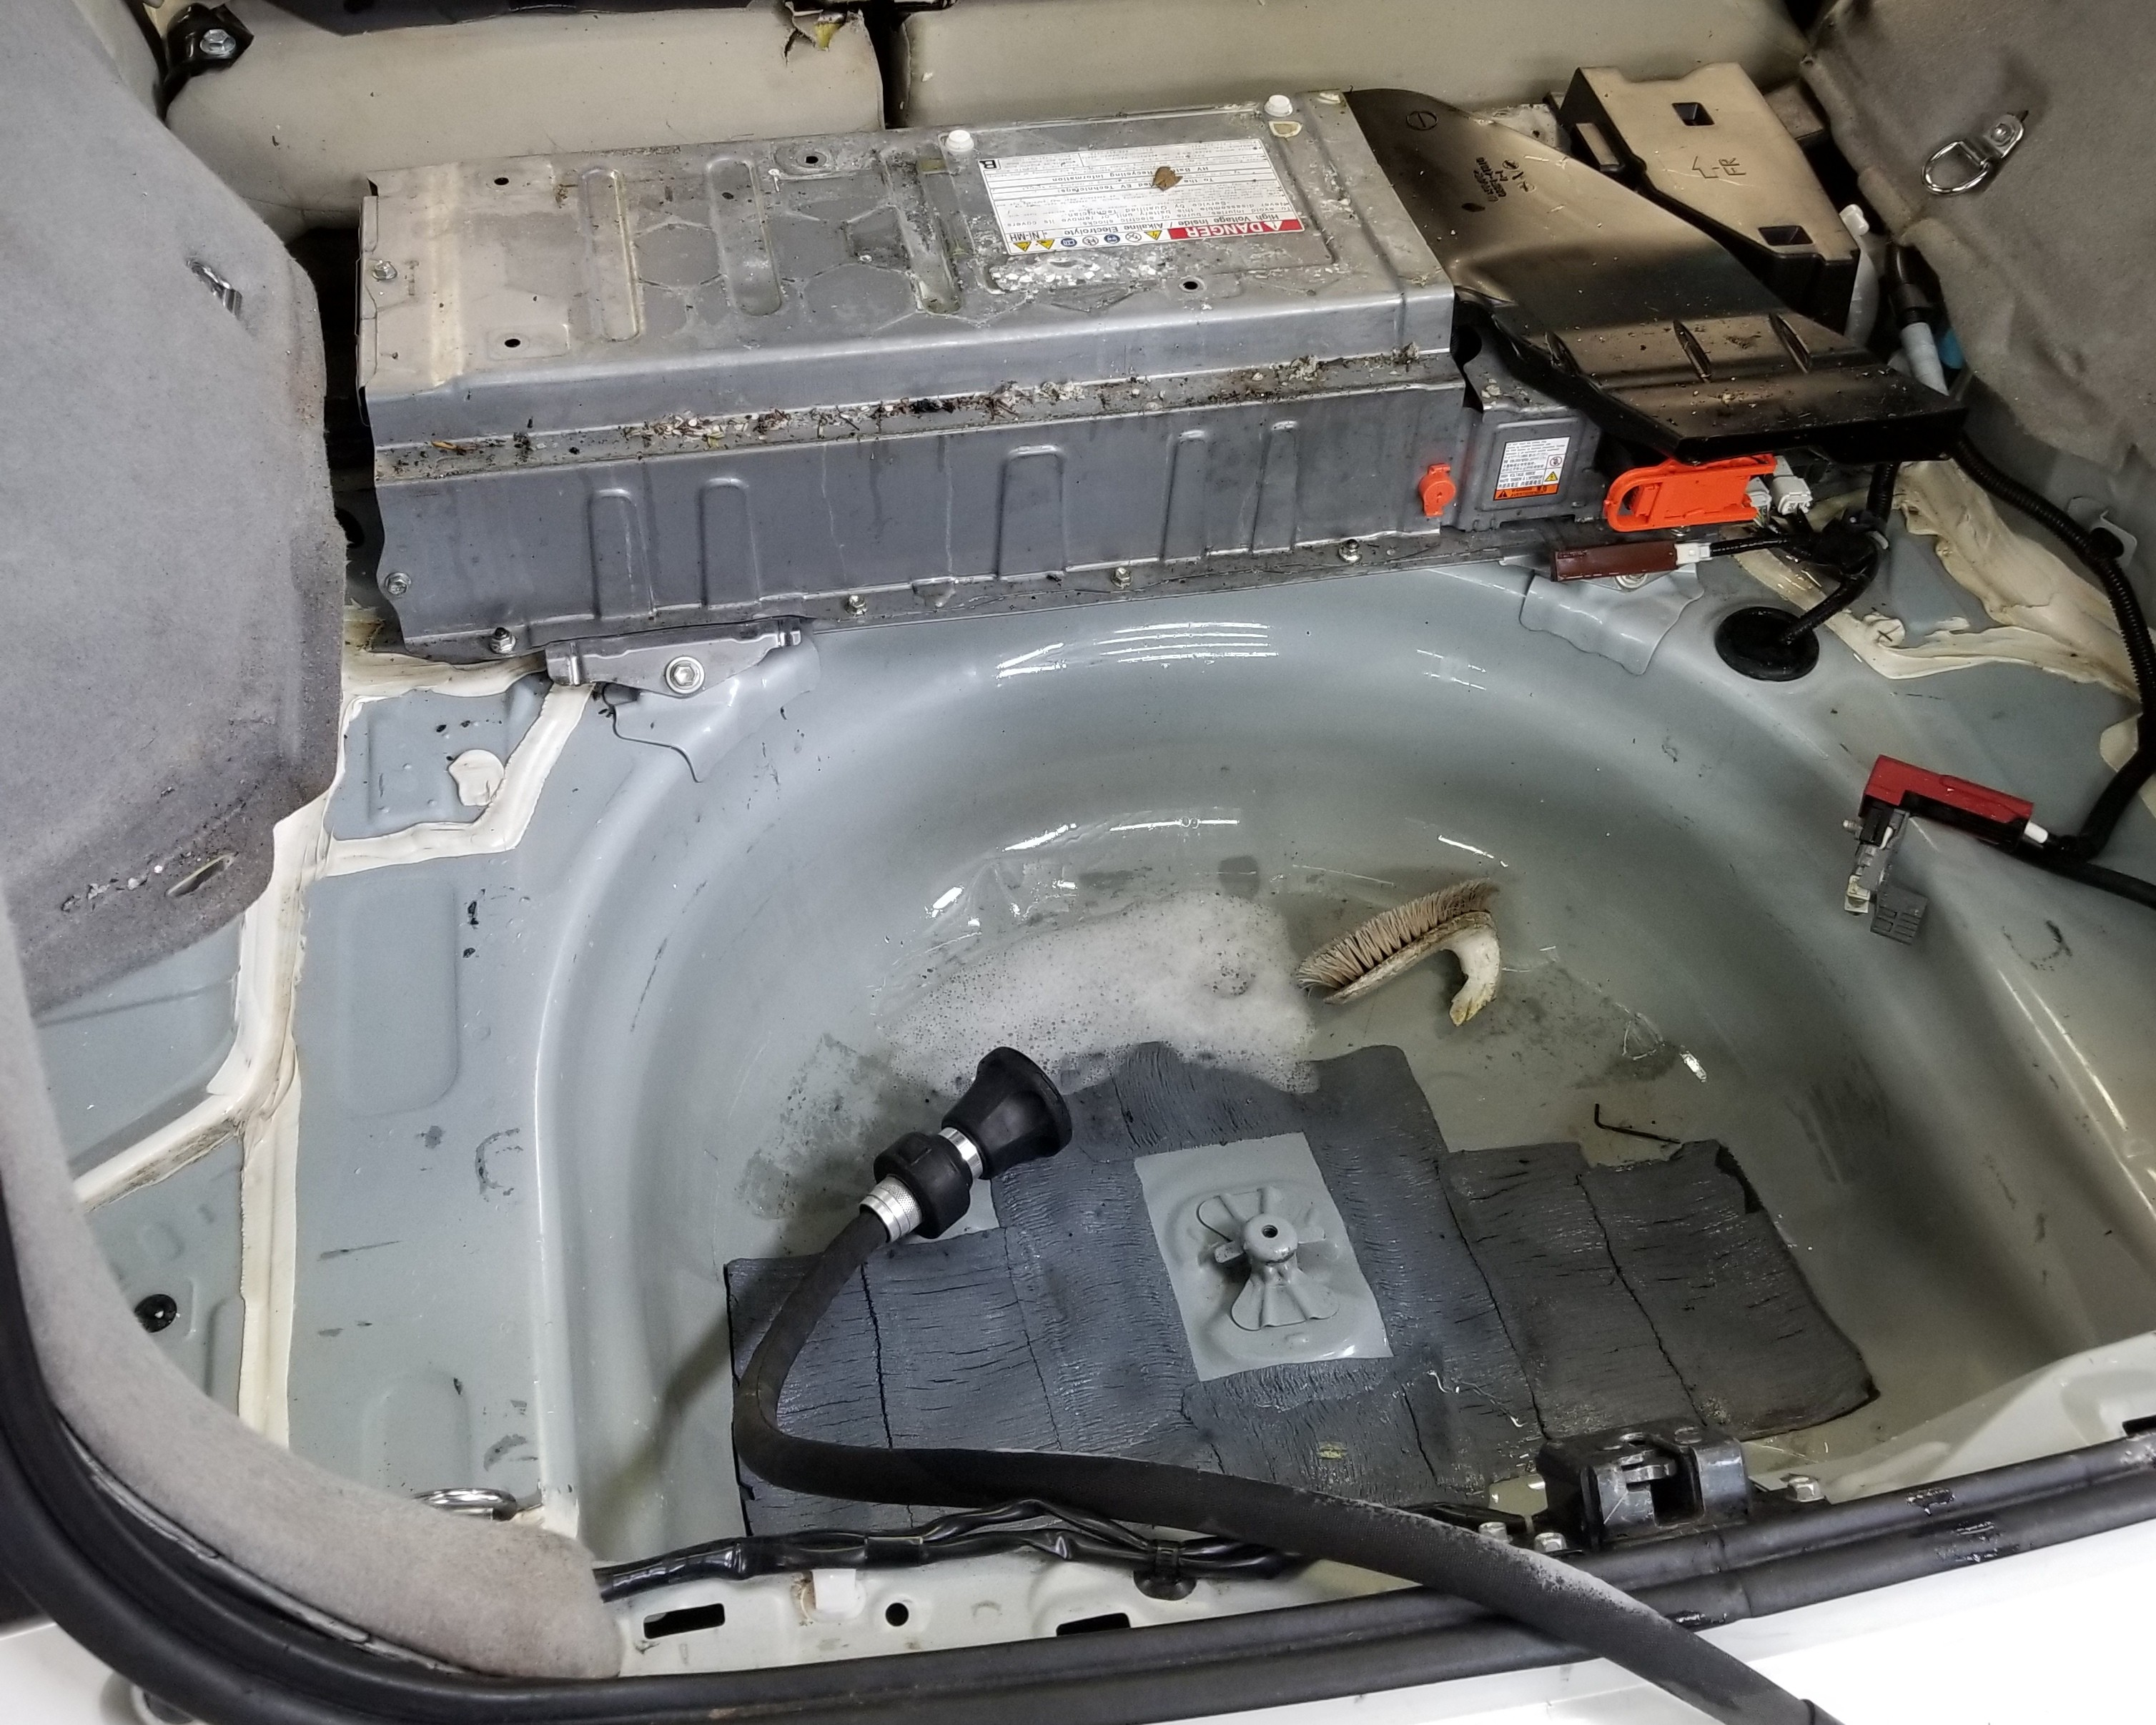 Prius high voltage battery covered with mouse droppings